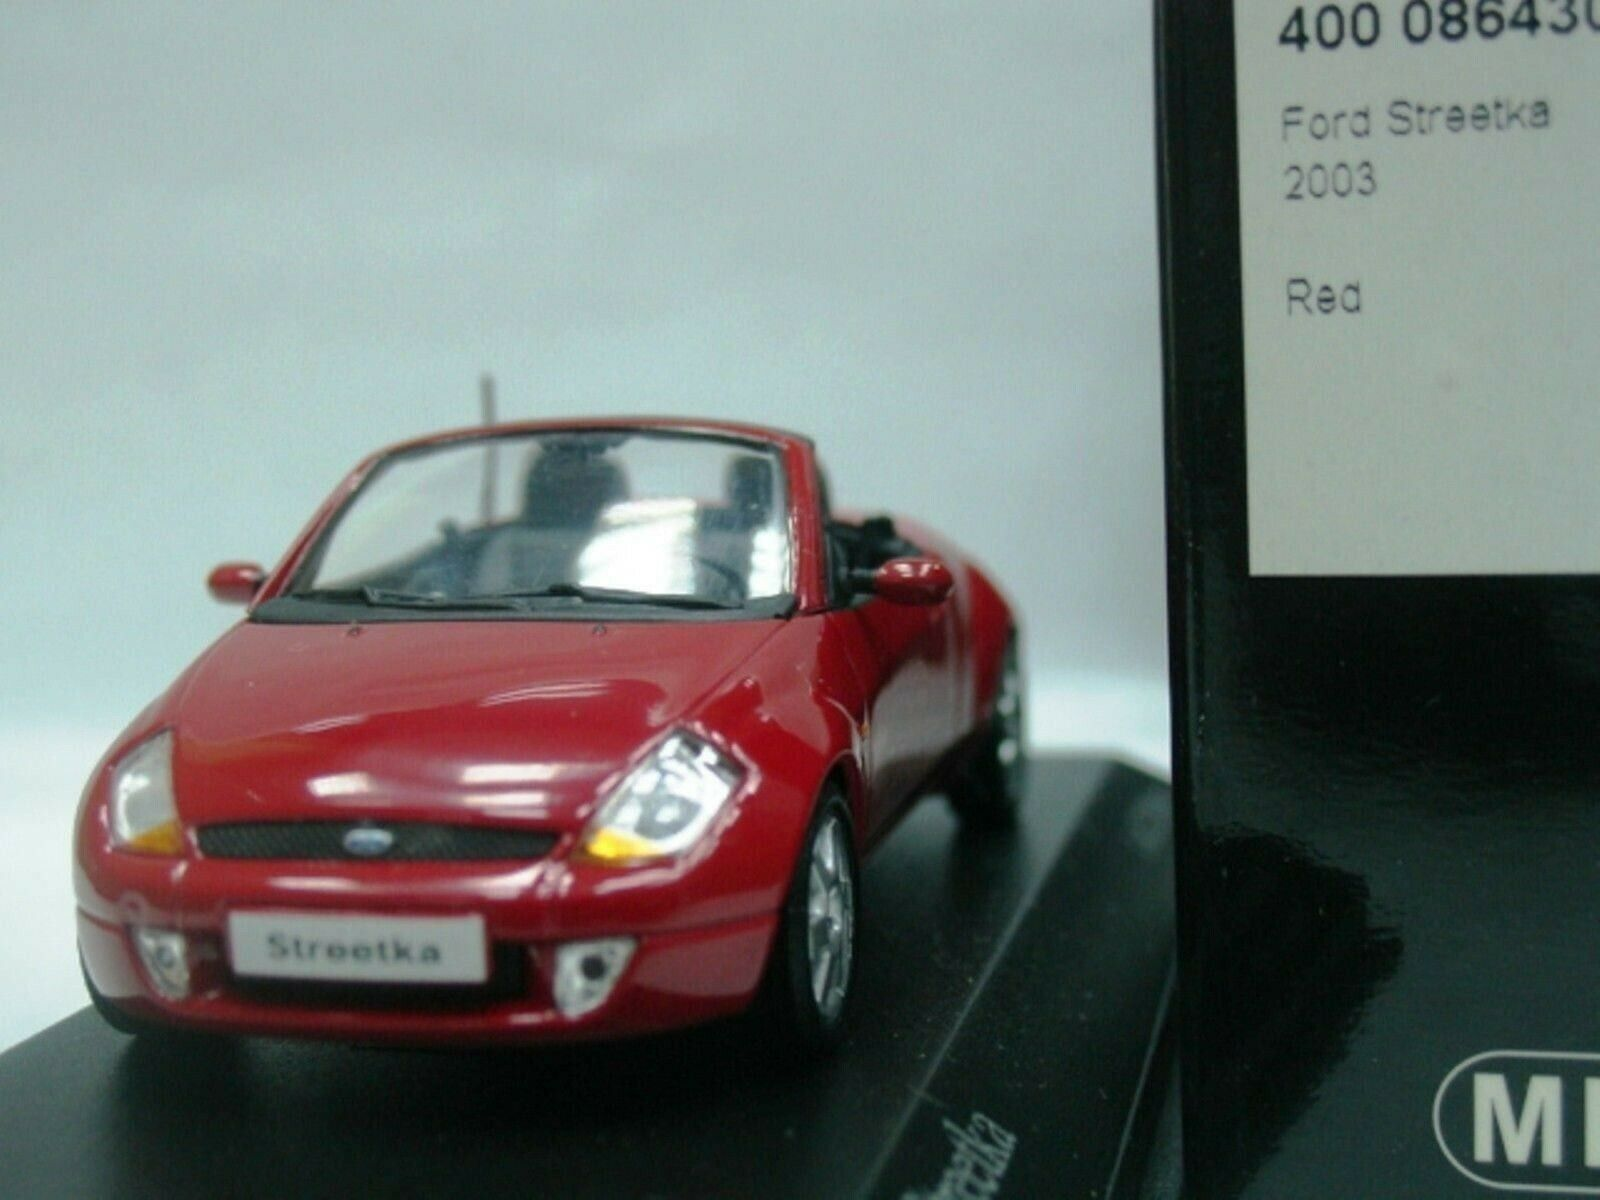 WOW EXTREMELY RARE Ford Streetka Ka Ghia Cabriolet 2003 Red 1 43 Minichamps-GT